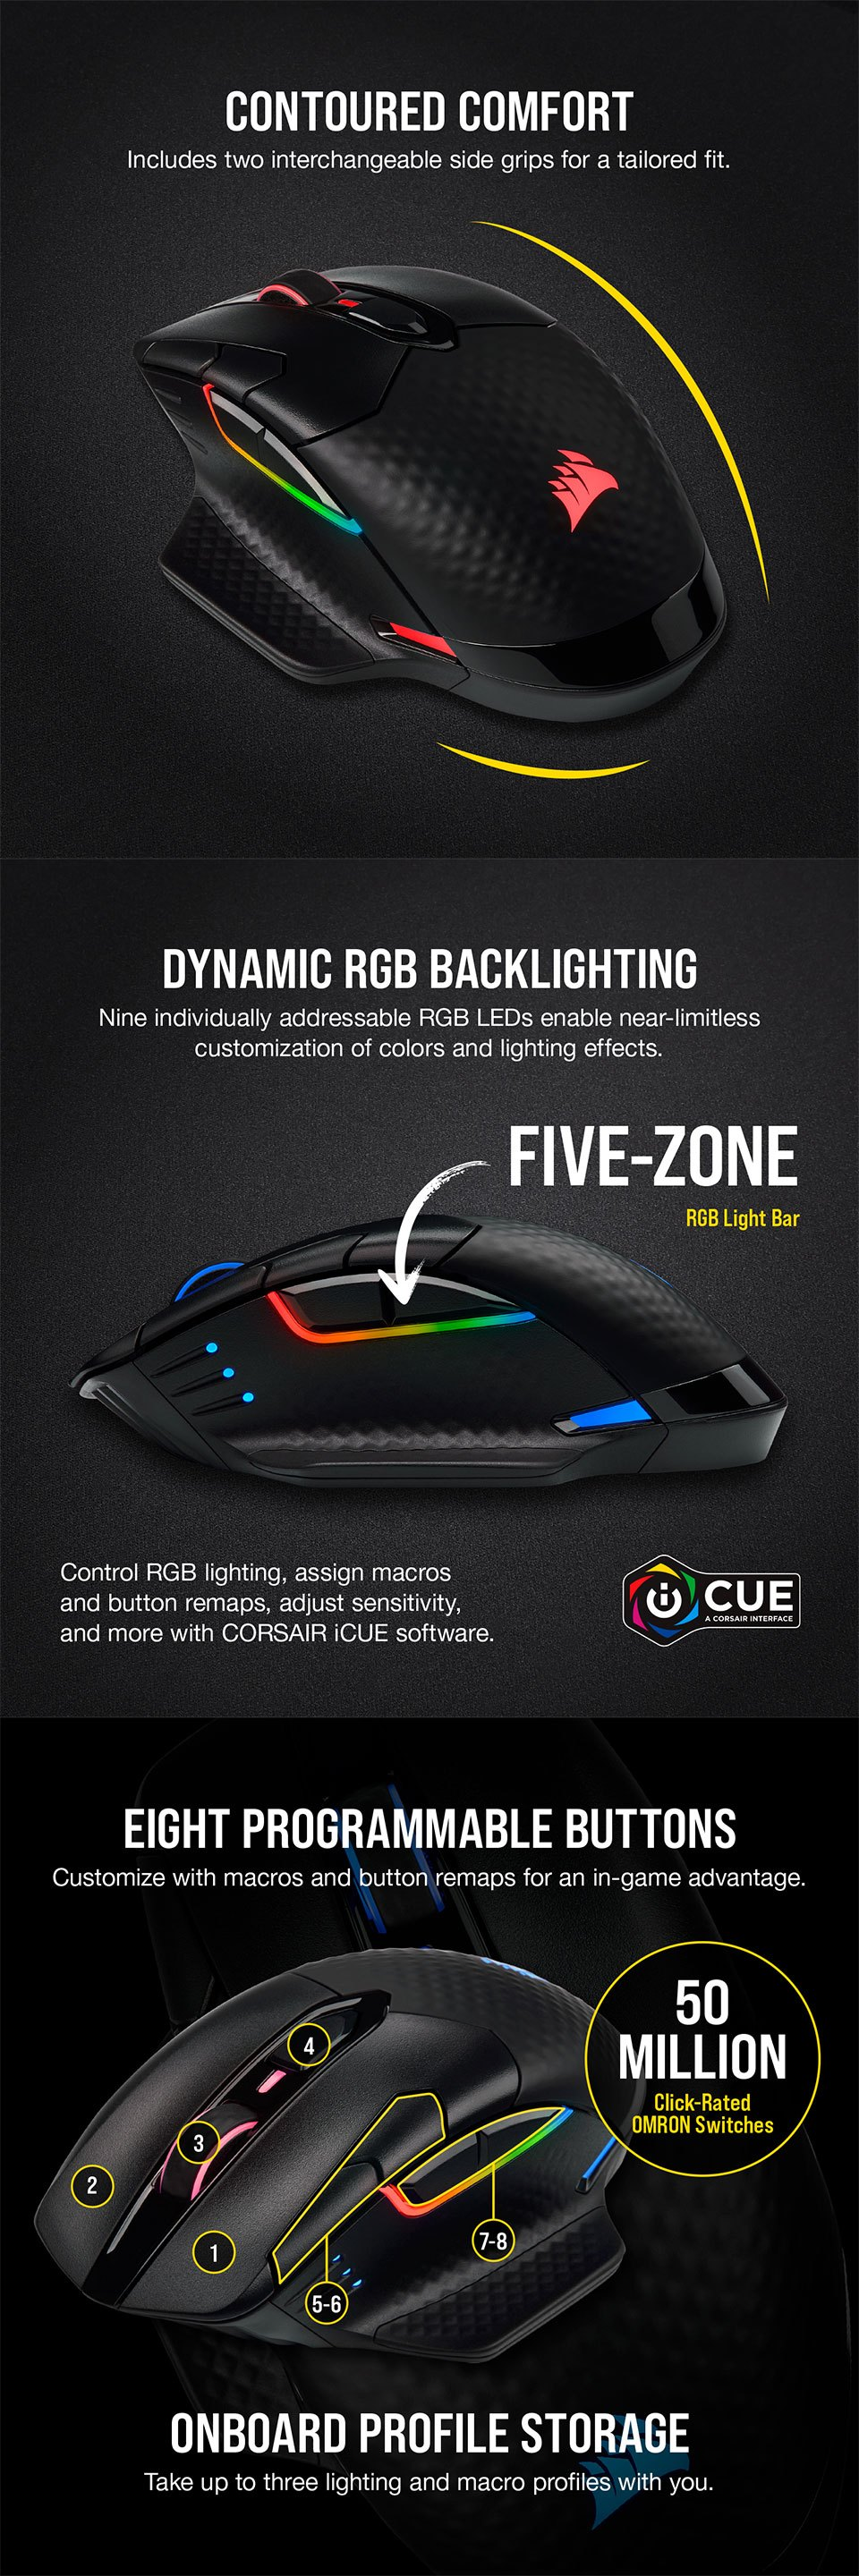 Corsair Dark Core Pro SE RGB Wireless Gaming Mouse features 2